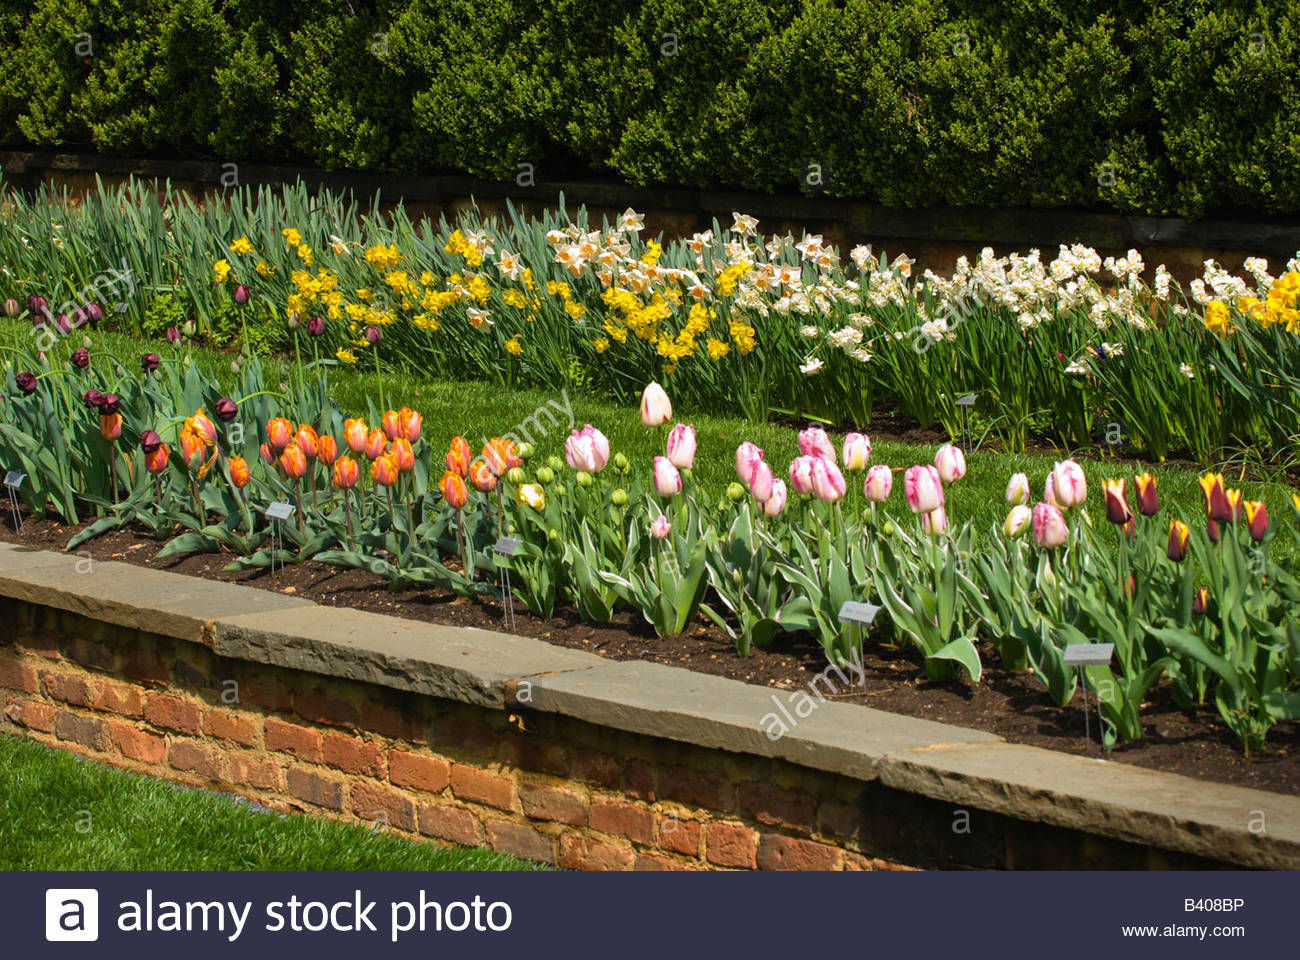 Flowers at Agecroft